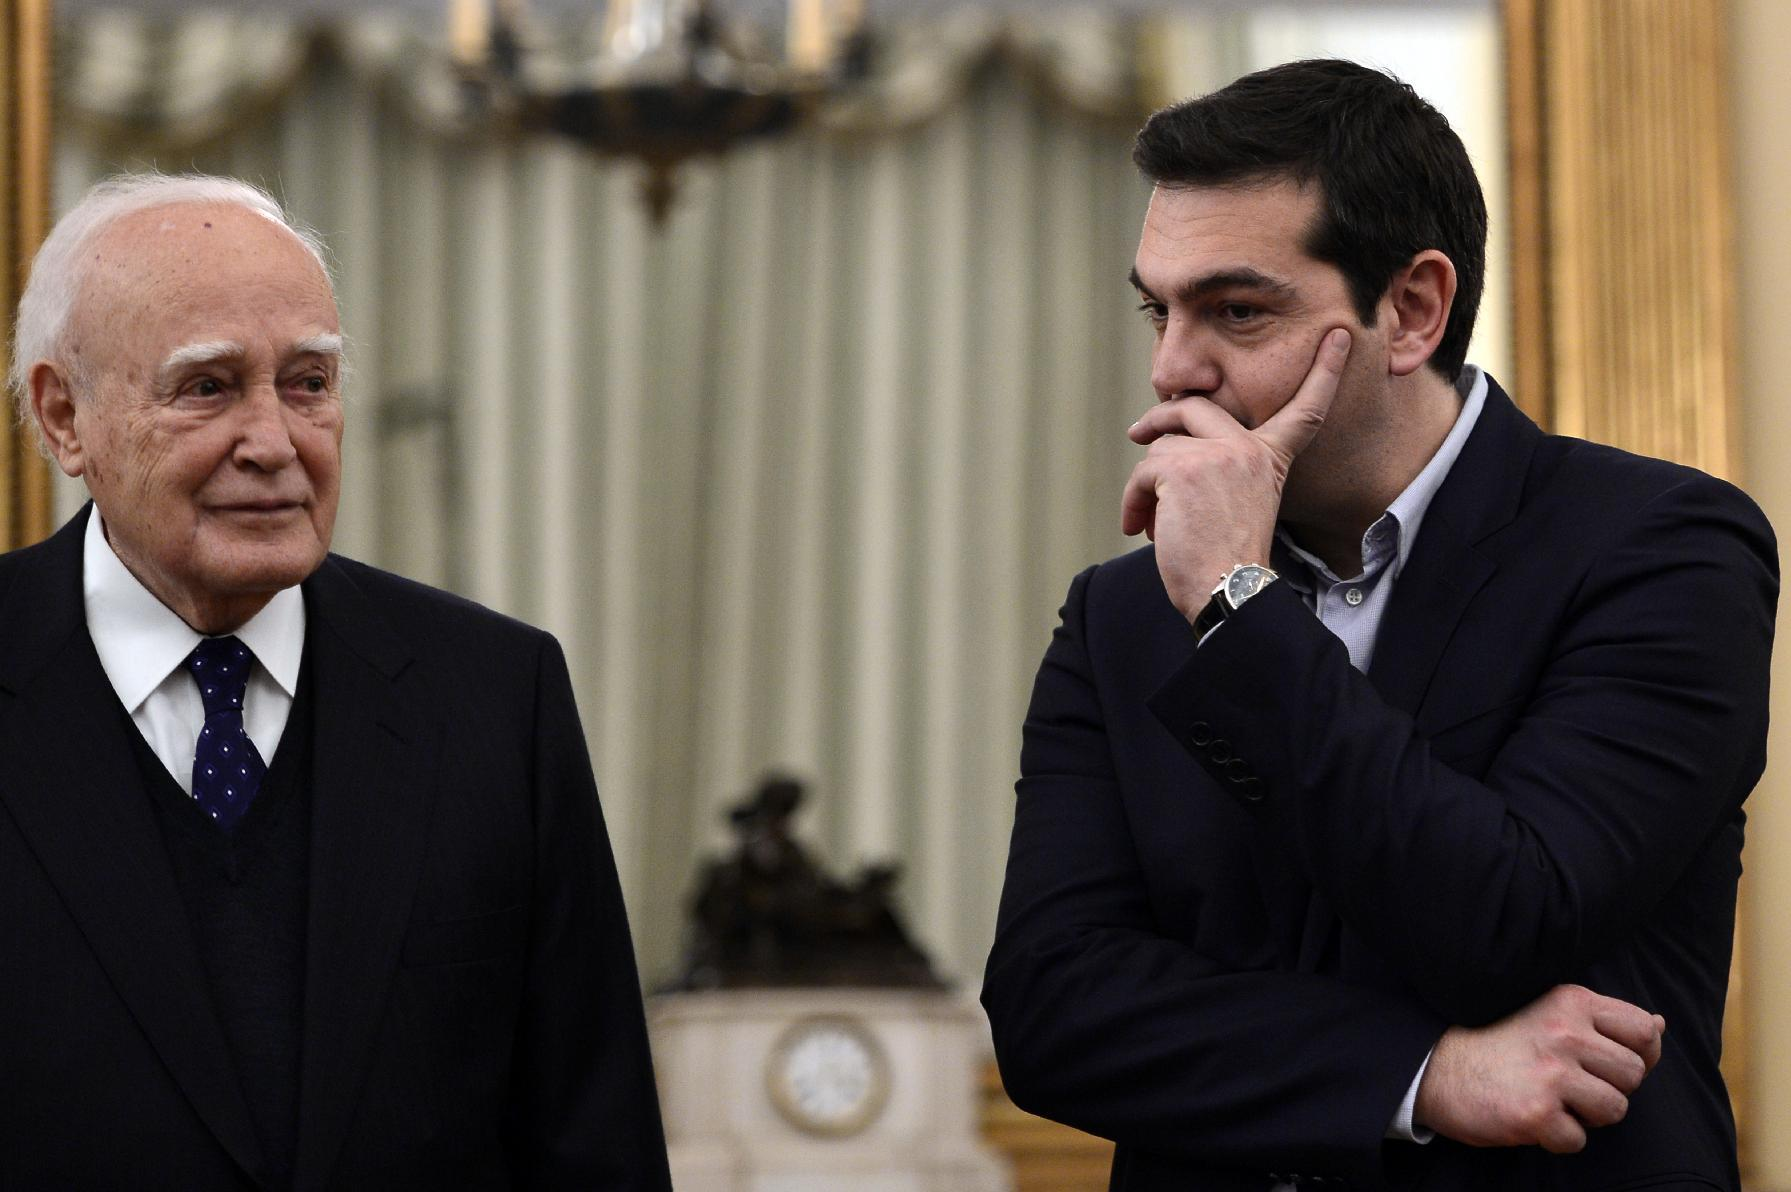 Greek cabinet set for first meeting since poll upset